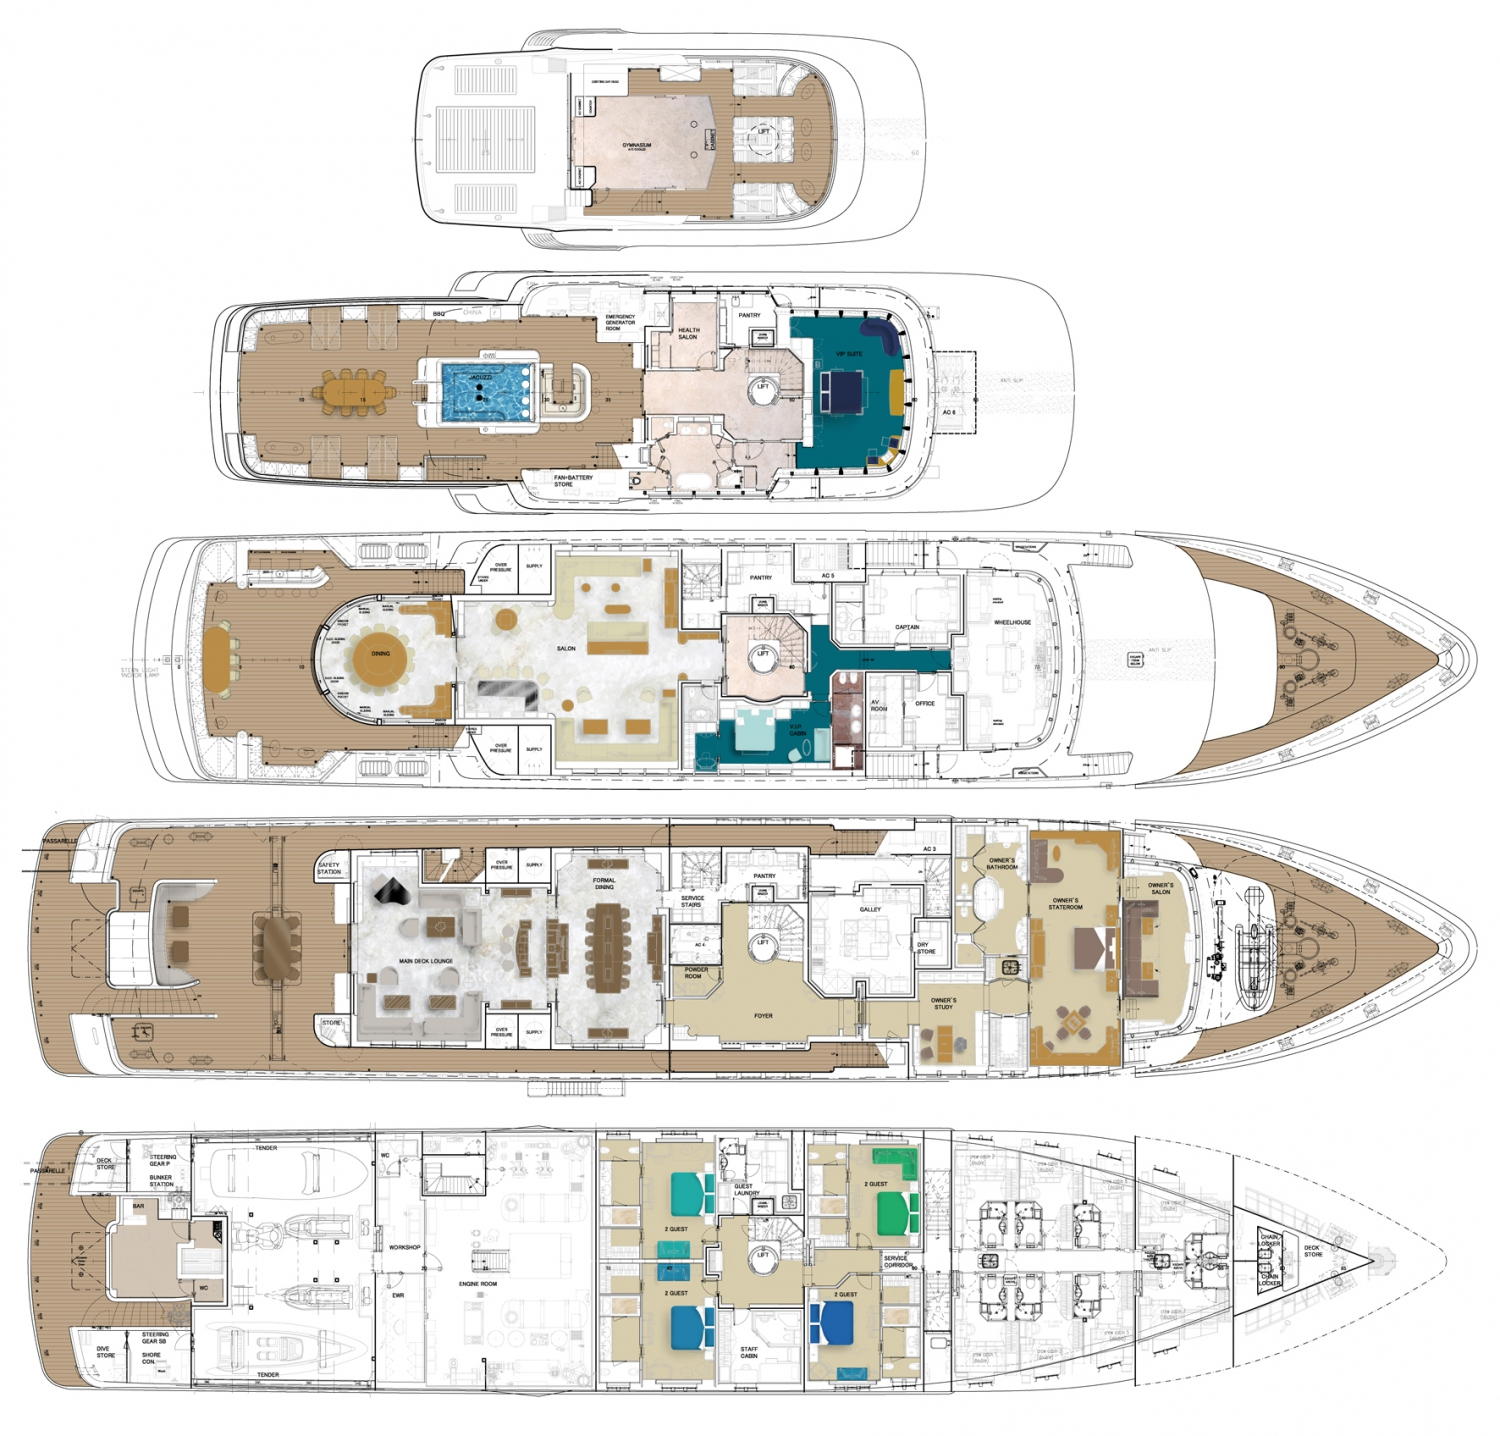 Mega yacht floor plans flooring ideas and inspiration for The world deck plans